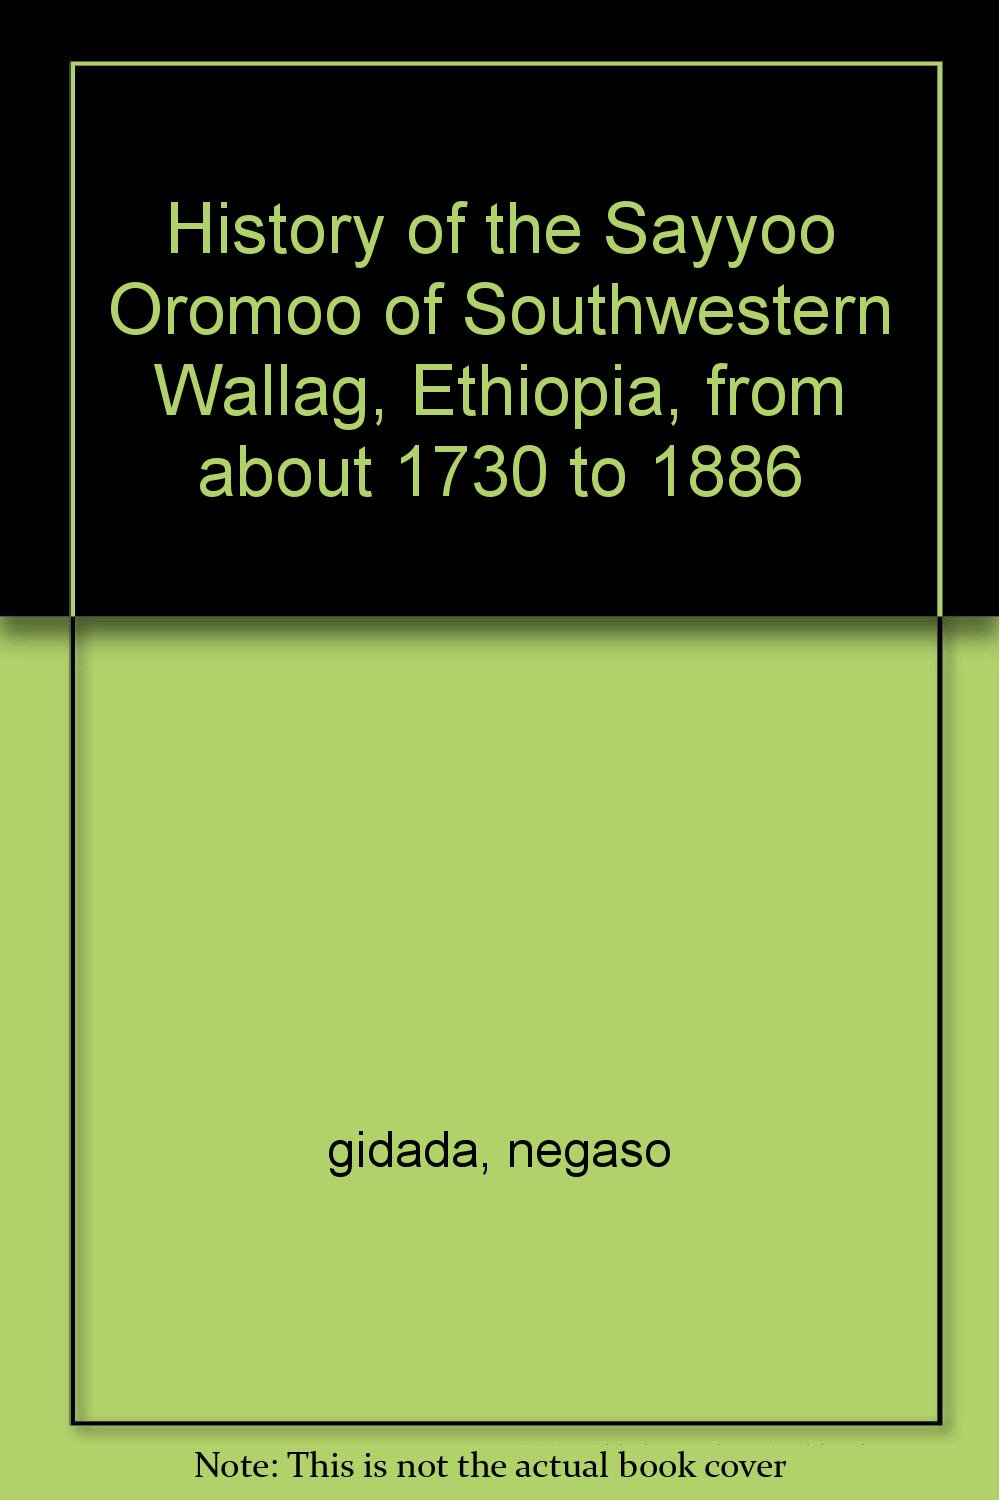 History of the Sayyoo Oromoo of Southwestern Wallag, Ethiopia, from about 1730 to 1886